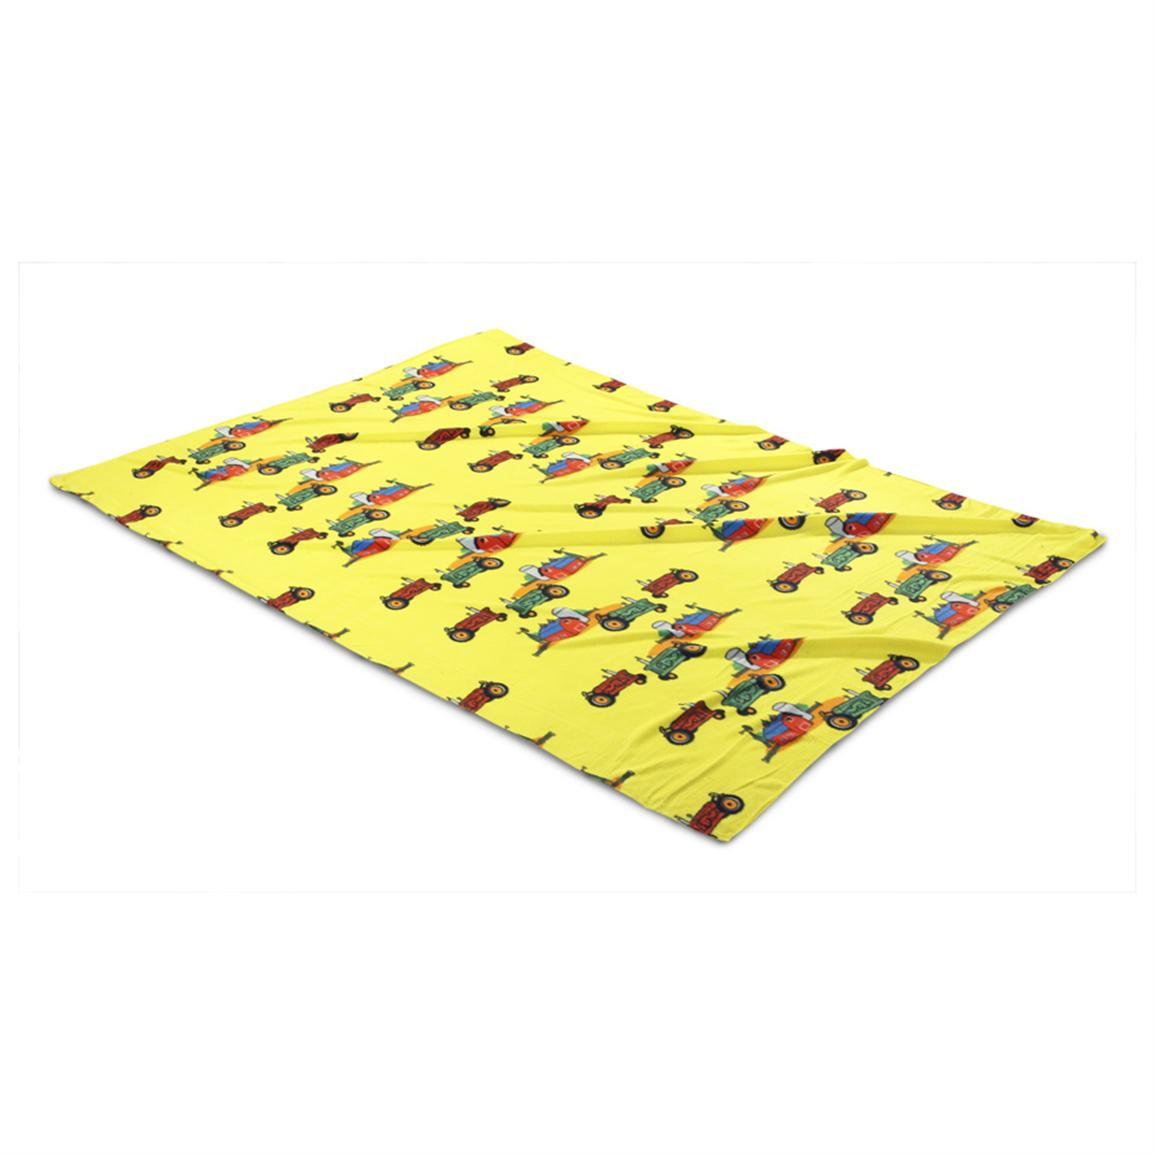 Super Size Fleece Throw Blanket, Tractor